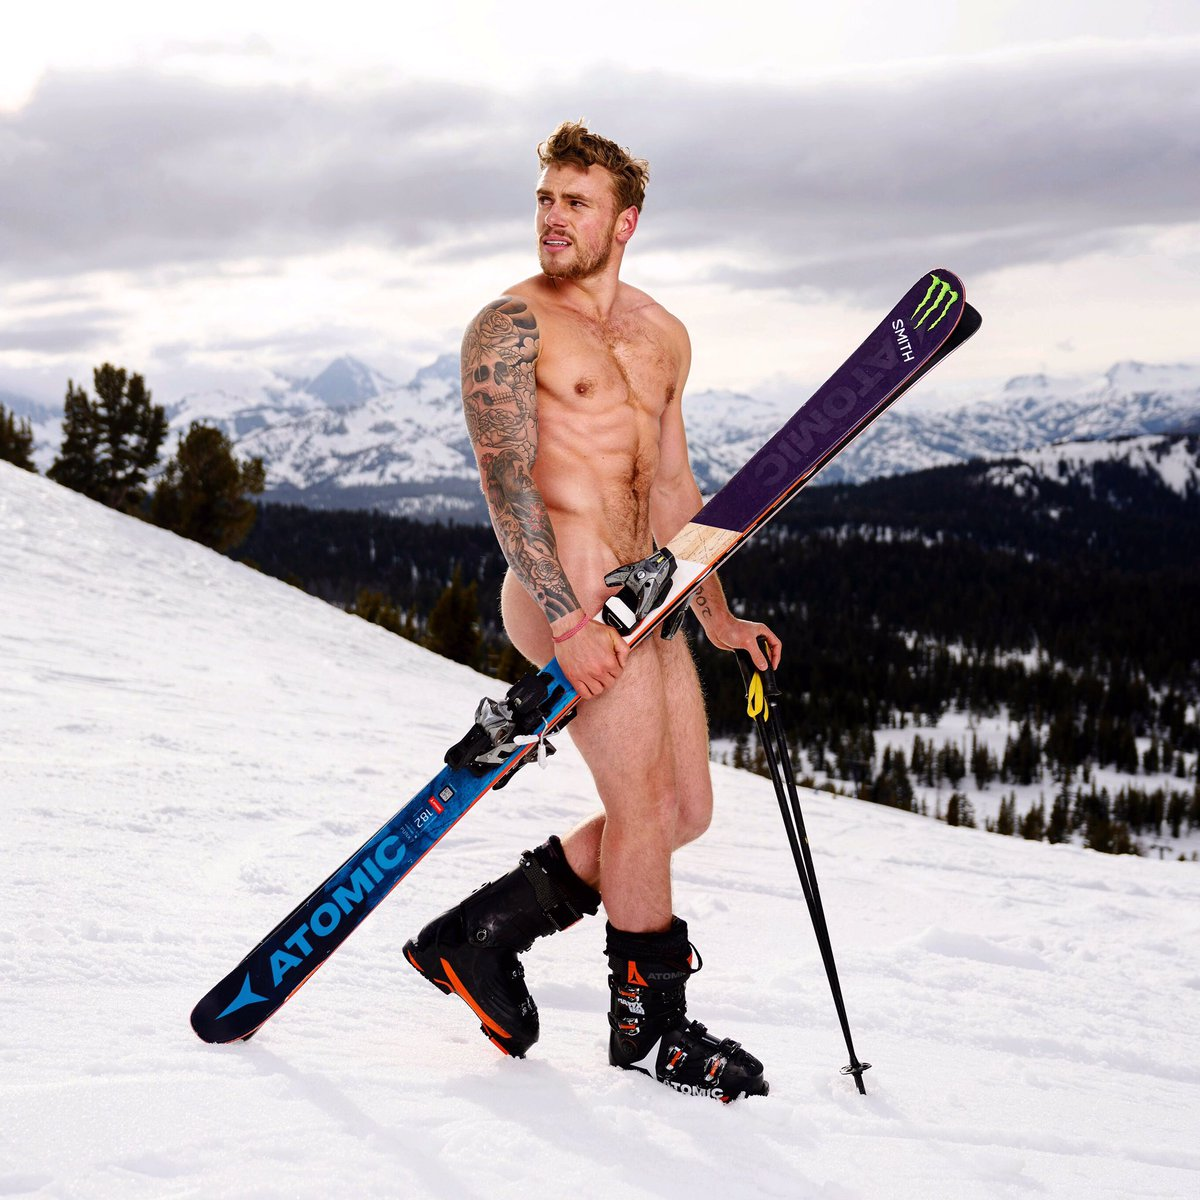 Topless photo of skier